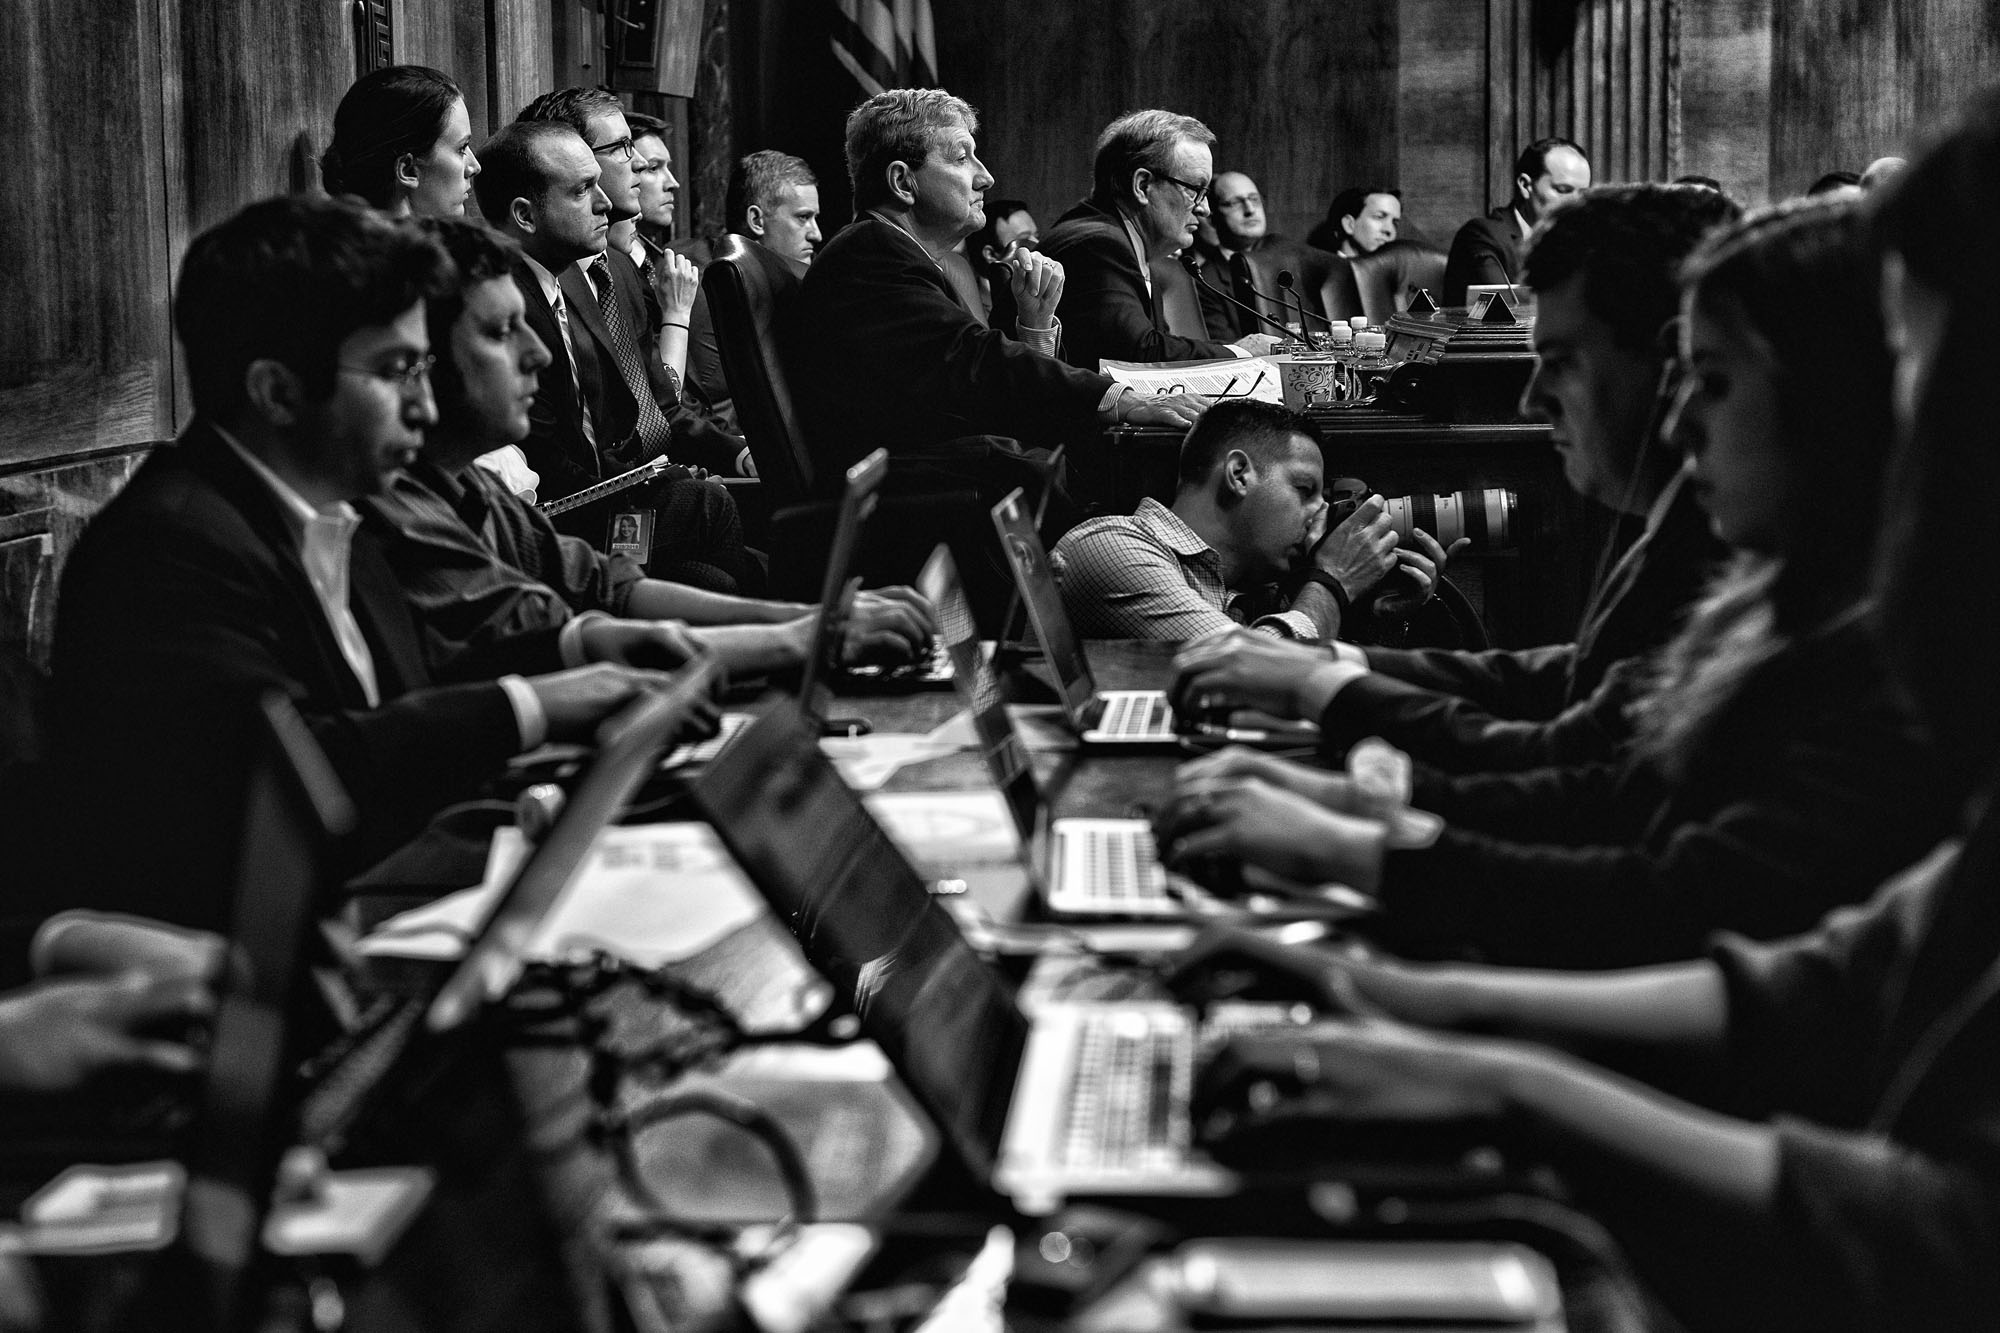 Members of the press and U.S. Senate Judiciary Committee listen to testimony during the confirmation of the deputy attorney general, on March 7, 2017.